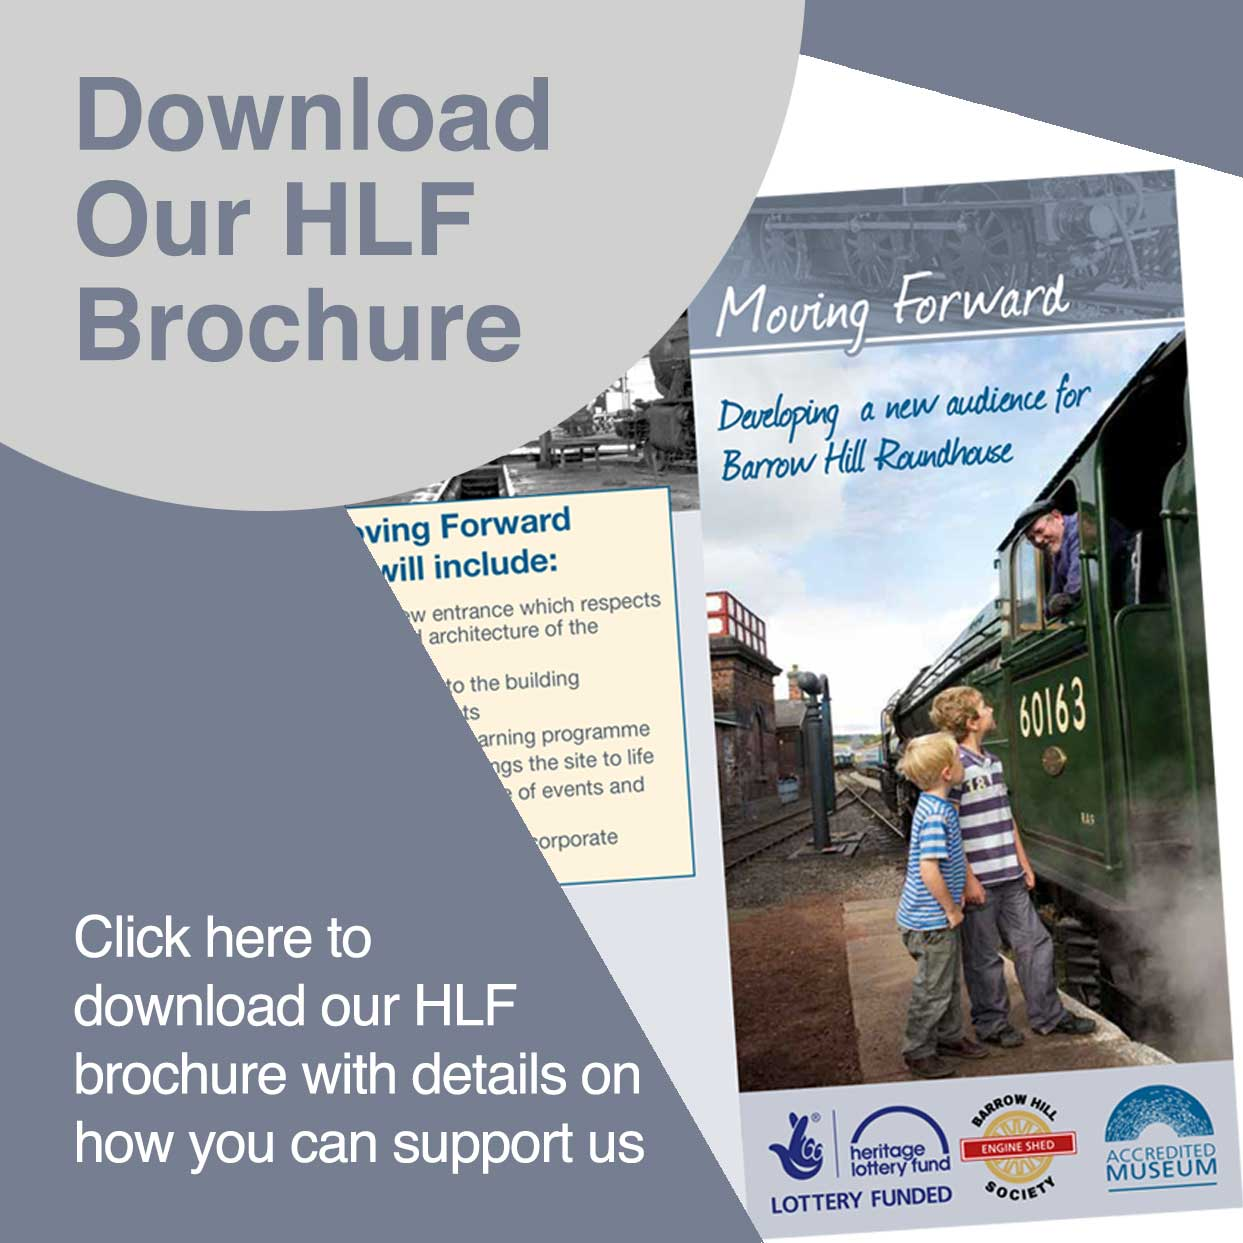 Click here to download the HLF brochure